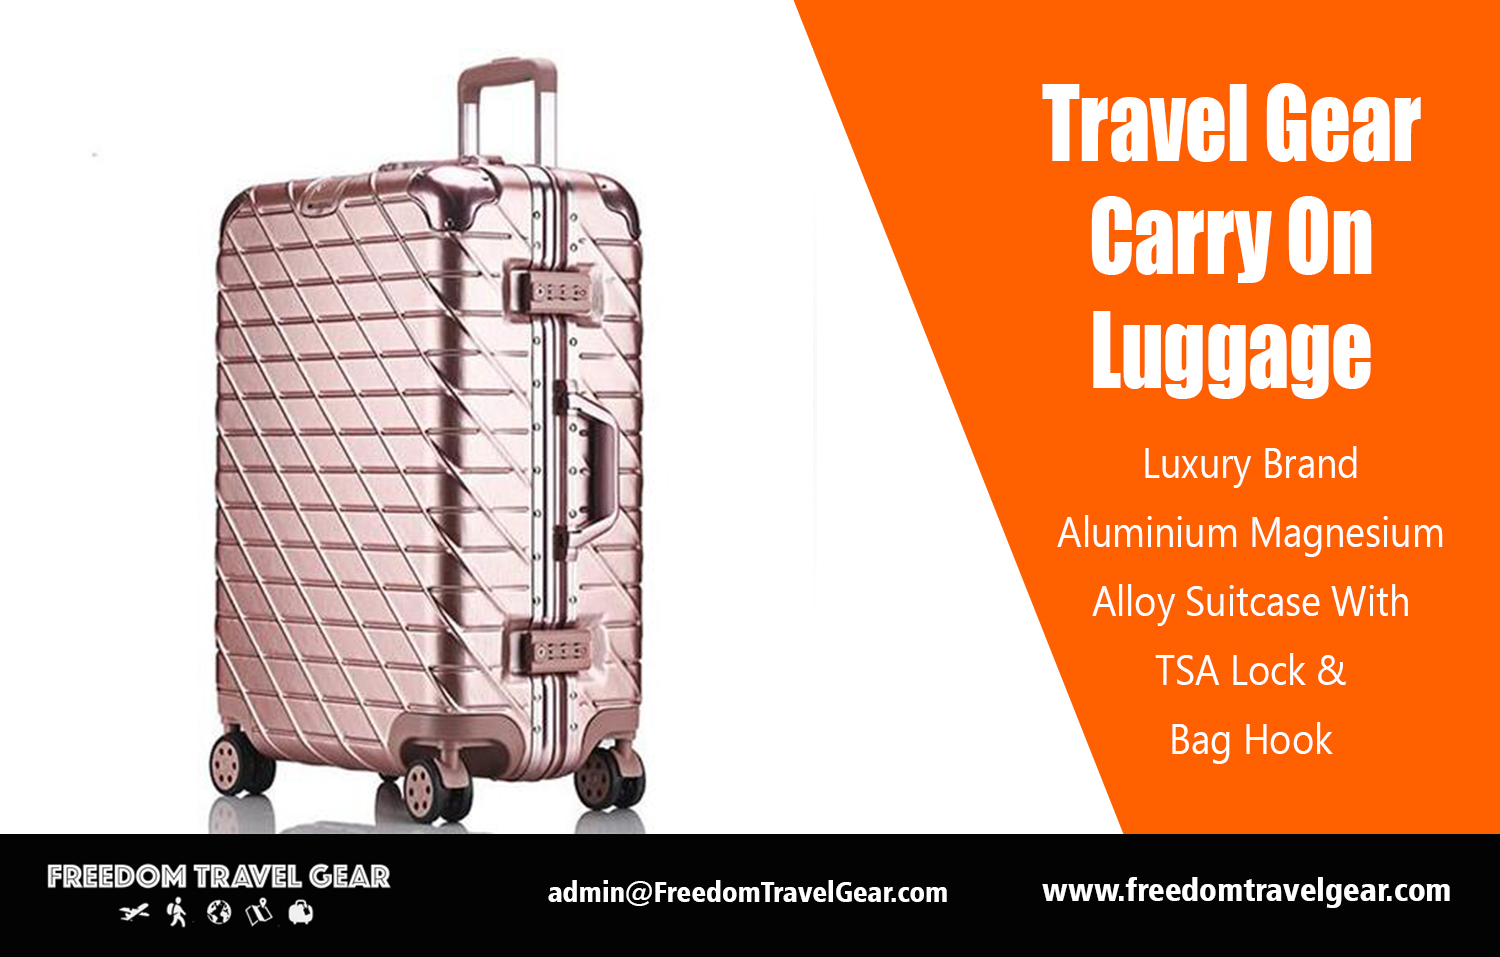 2018 Travel Gear Travel Gear Carry On Luggage Https Freedomtravelgear